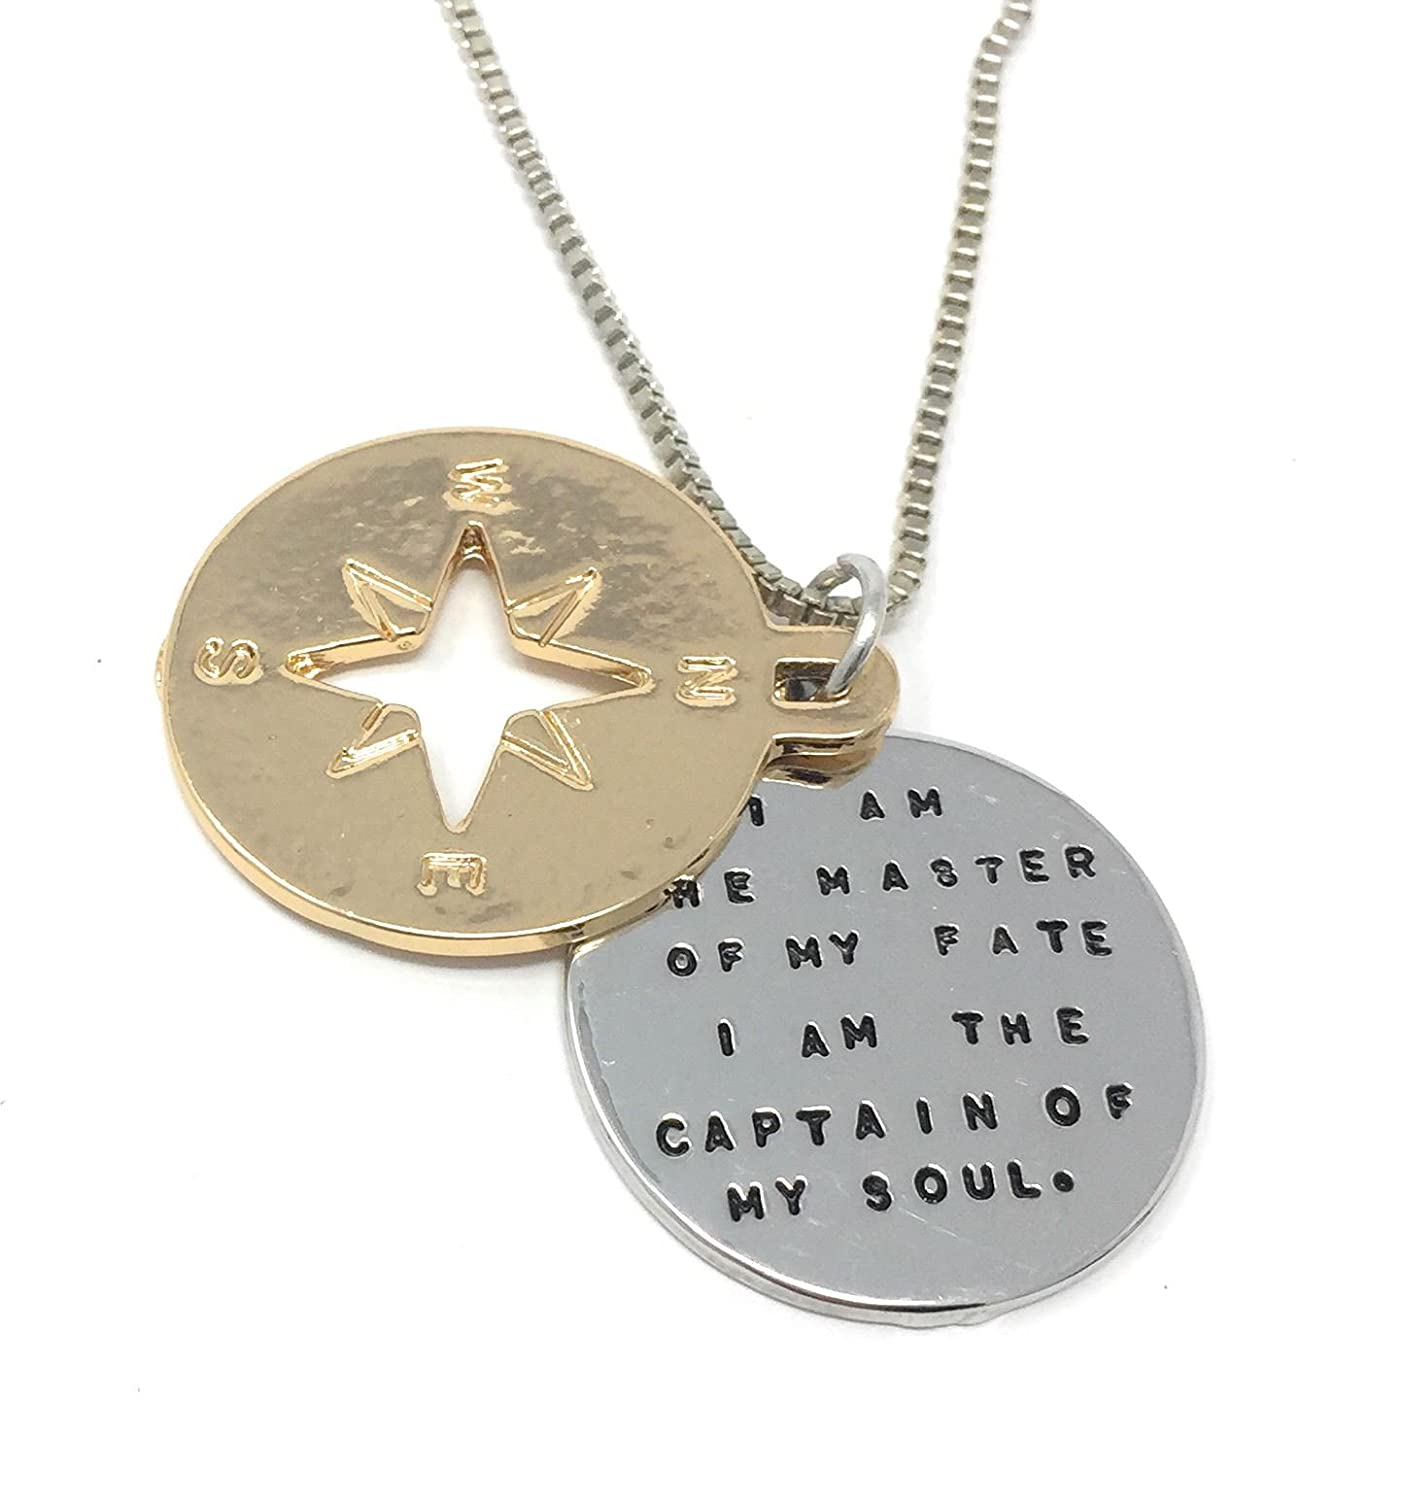 Silver-Tone I Am Master of My Fate I Am The Captain of My Soul Engraved Pendant Necklace 2.5cm Diameter with 18 Inch Chain